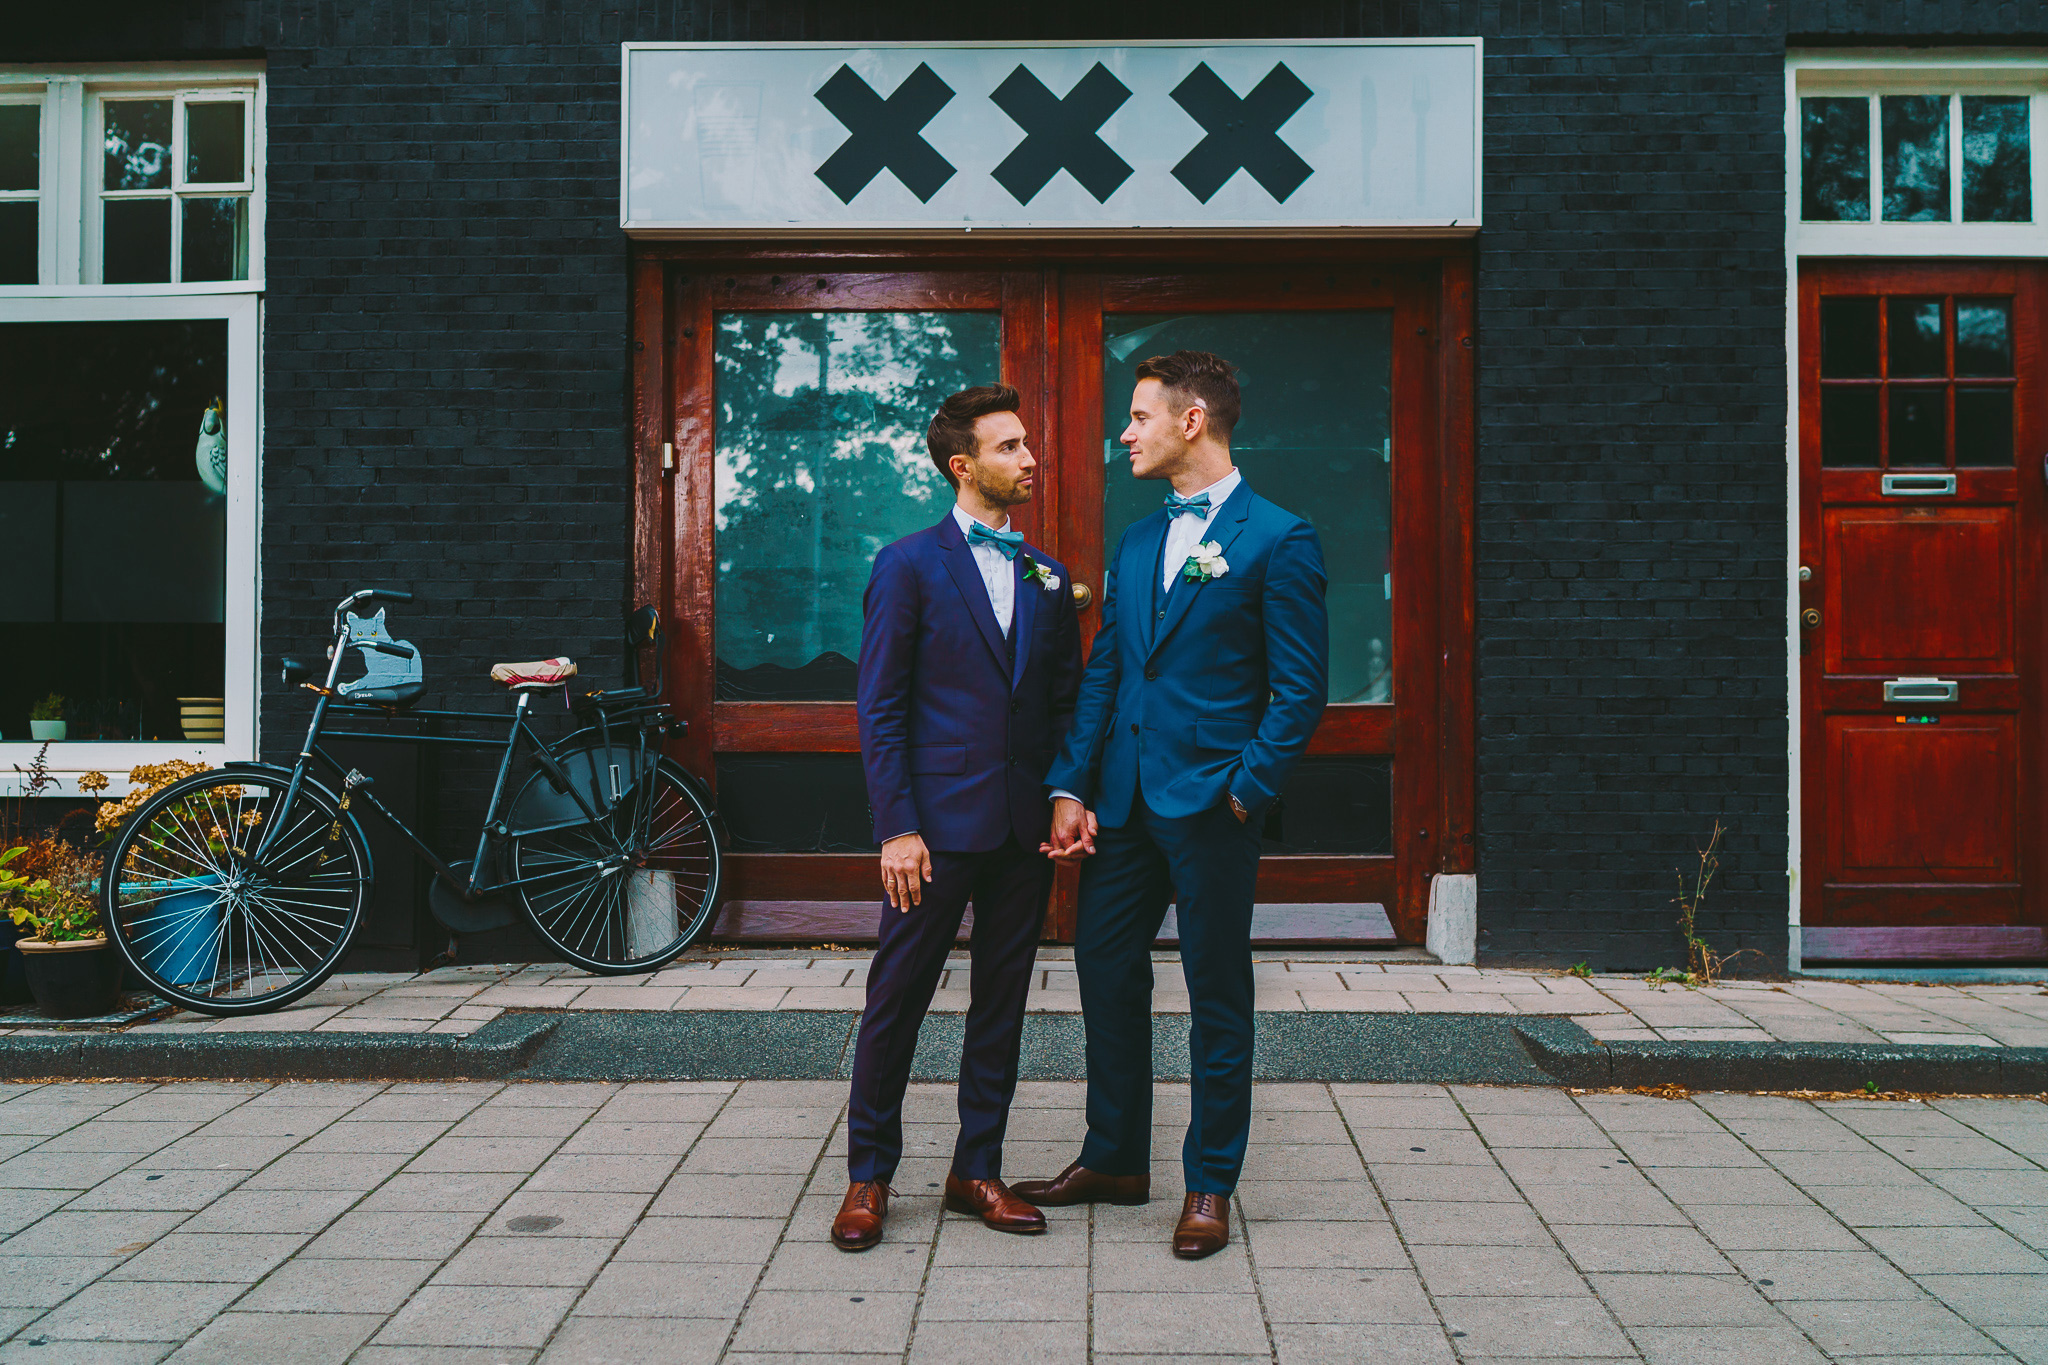 yesido_jamesyves_amsterdam_gaywedding_05715